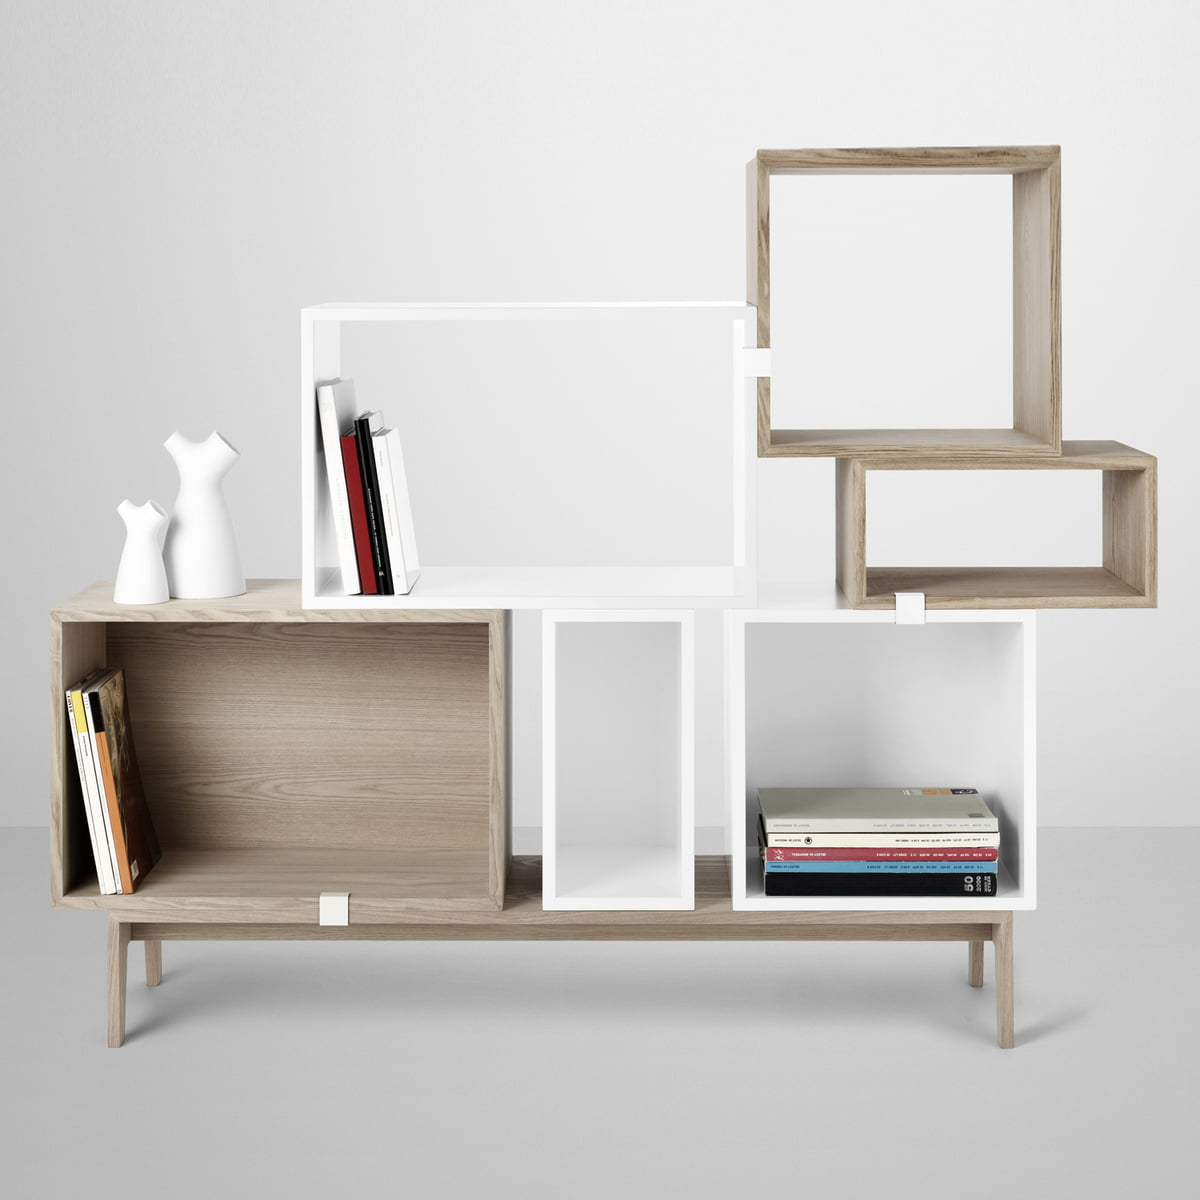 Muuto Regal muuto stacked shelving system white